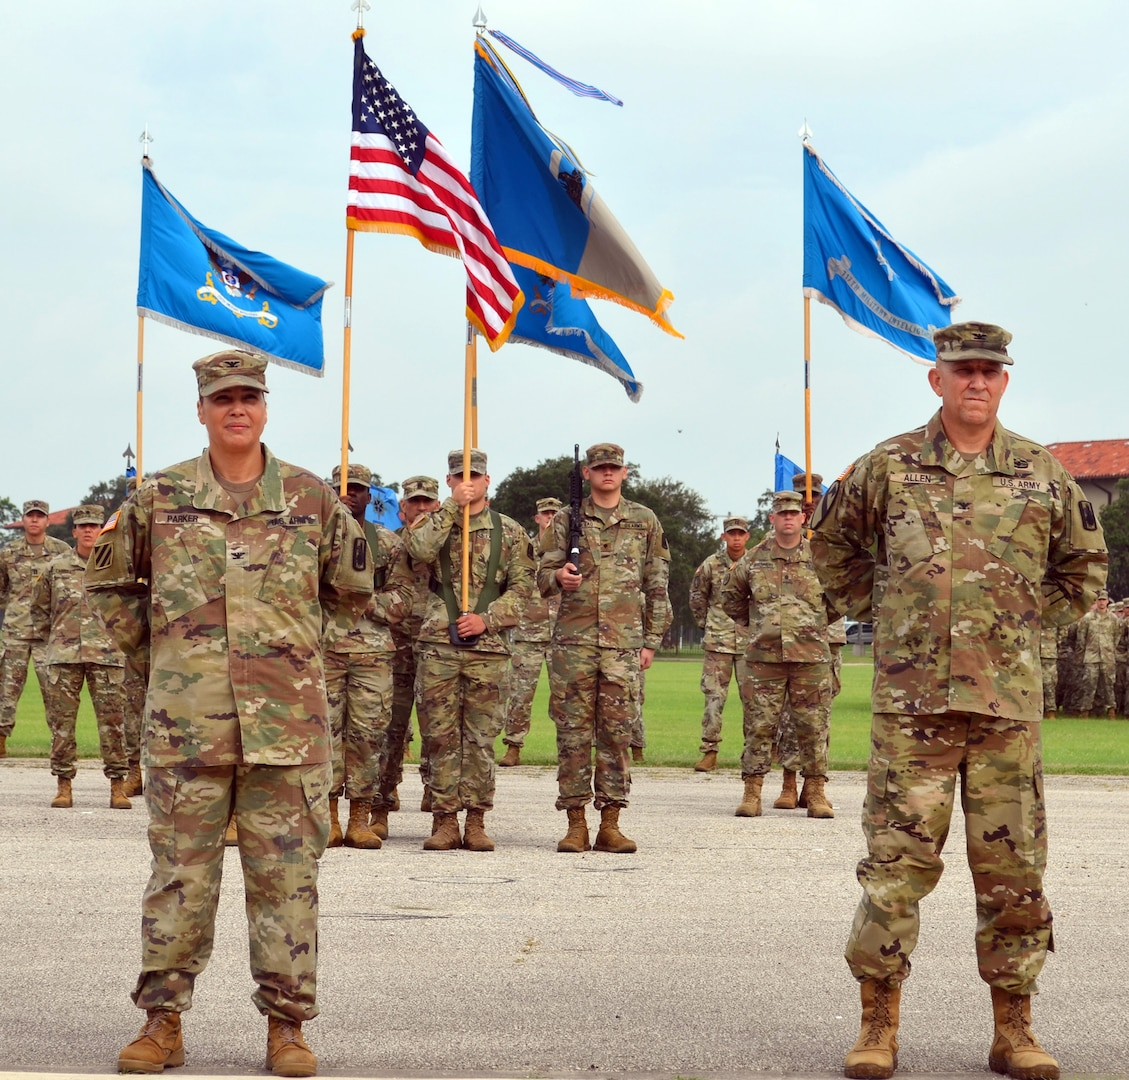 Col. Ingrid Parker (left), 470th Military Intelligence Brigade outgoing commander, and Col. Daniel Allen, 470th MI Brigade incoming commander, stand at attention during the brigade's change of command ceremony at the MacArthur Parade Field at Joint Base San Antonio-Fort Sam Houston July 9.